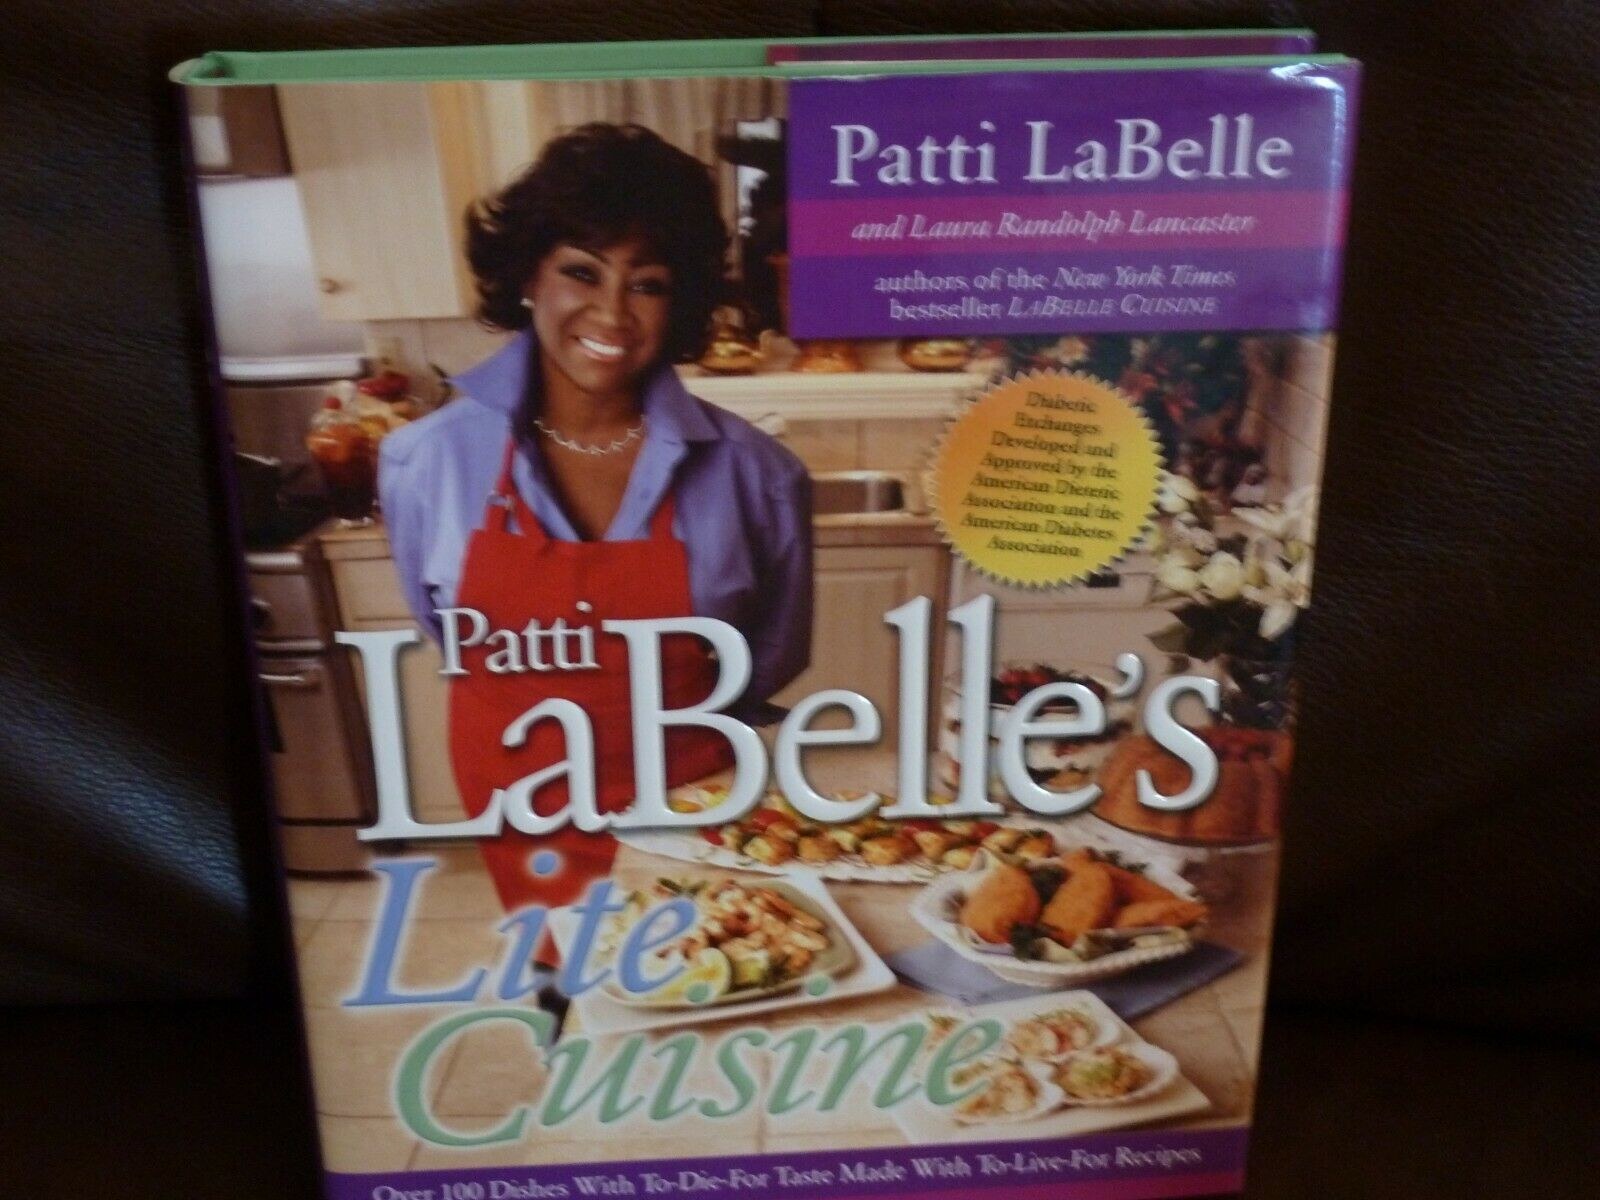 Lite Cuisine : Over 100 Dishes with to Die for Taste Made with to Live for  Recipe by Laura Randolph Lancaster, Patti Labelle and Patti LaBelle (2003,